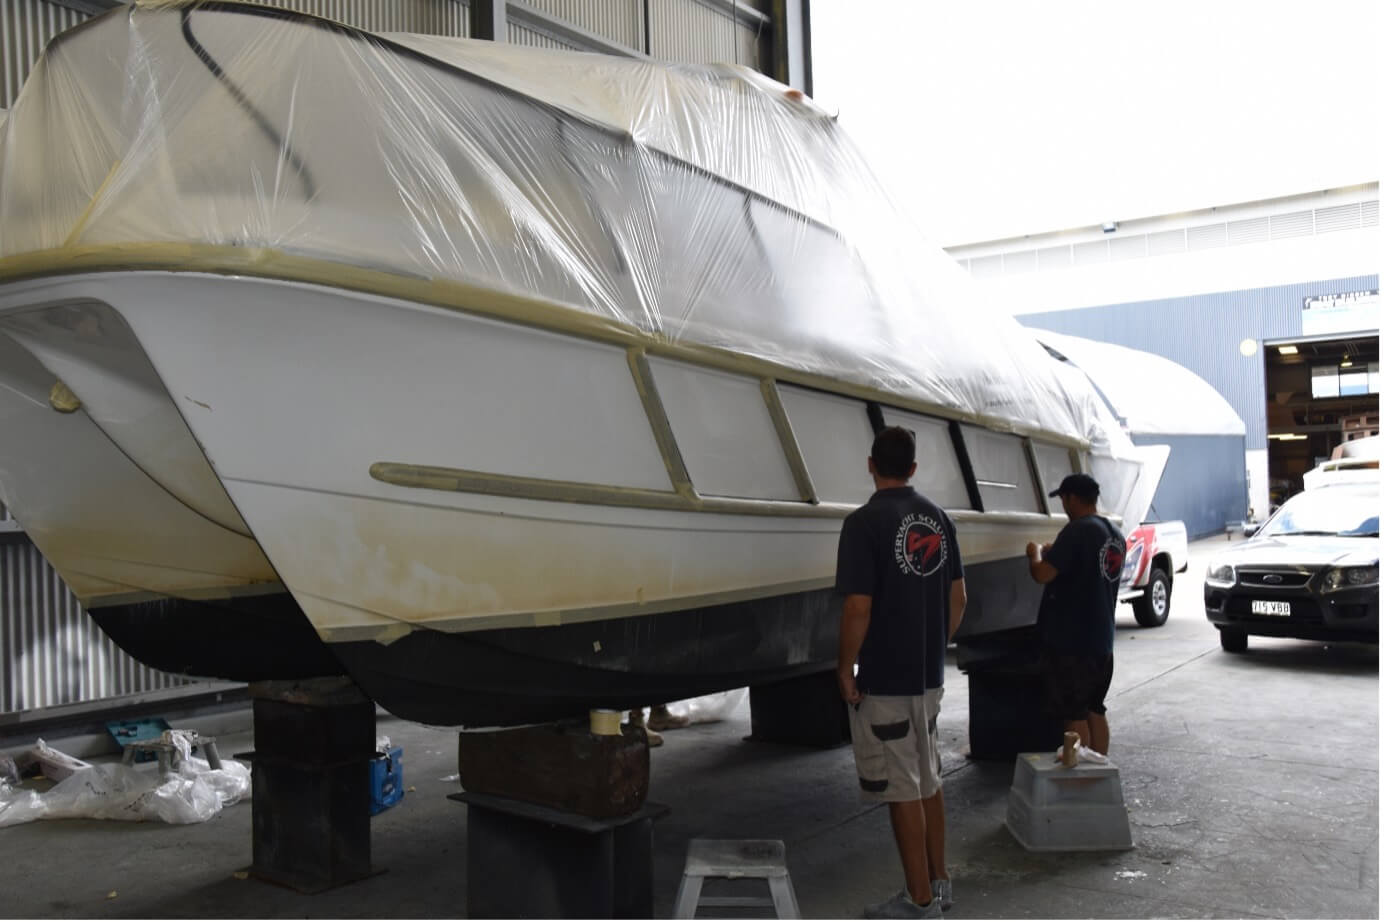 volunteer boat being painted at GCCM by two workers